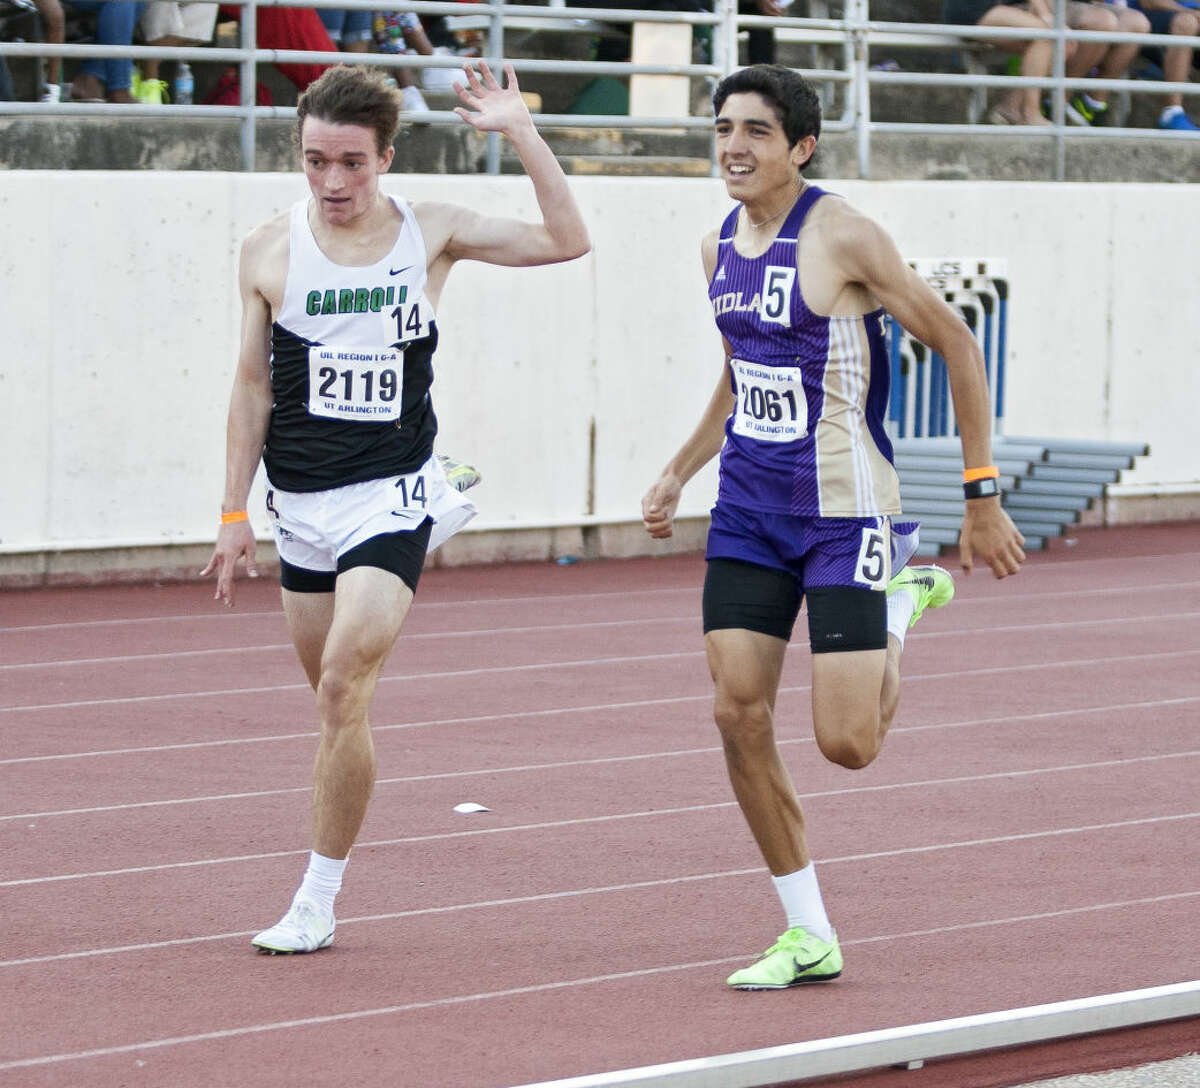 Midland junior Bryce Hoppel passes Southlake Carroll's Johnny Kemps at the end of the 1600M run during the UIL 6A Region 1/5A Region 2 Track and Field Championship on Saturday at Maverick Stadium in Arlington. Hope finished in second with a 4:18.12 run.